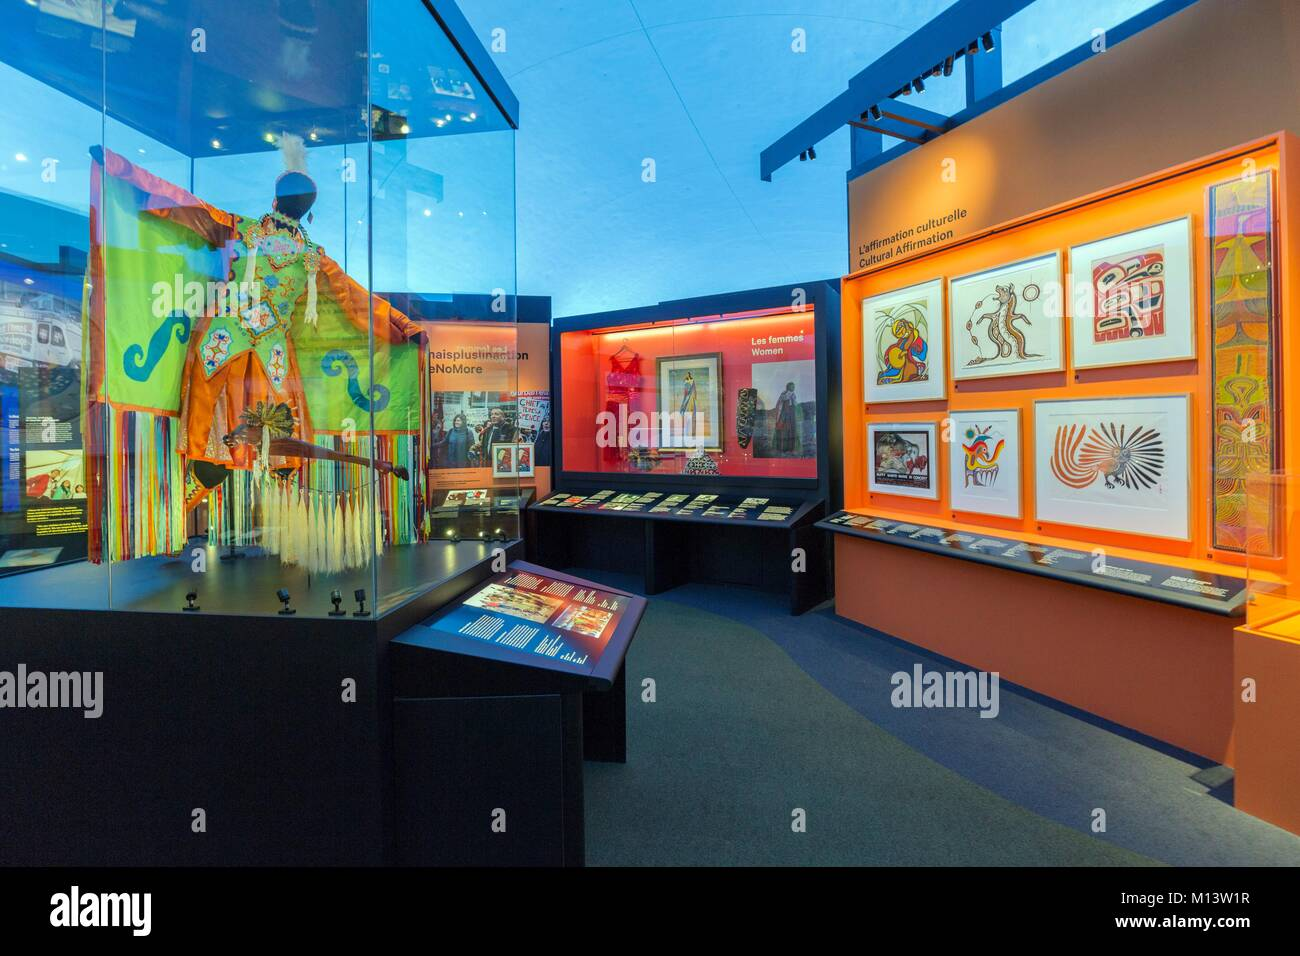 Canada, Province of Quebec, Outaouais, the City of Gatineau, the Canadian Museum of History, new galleries dedicated - Stock Image